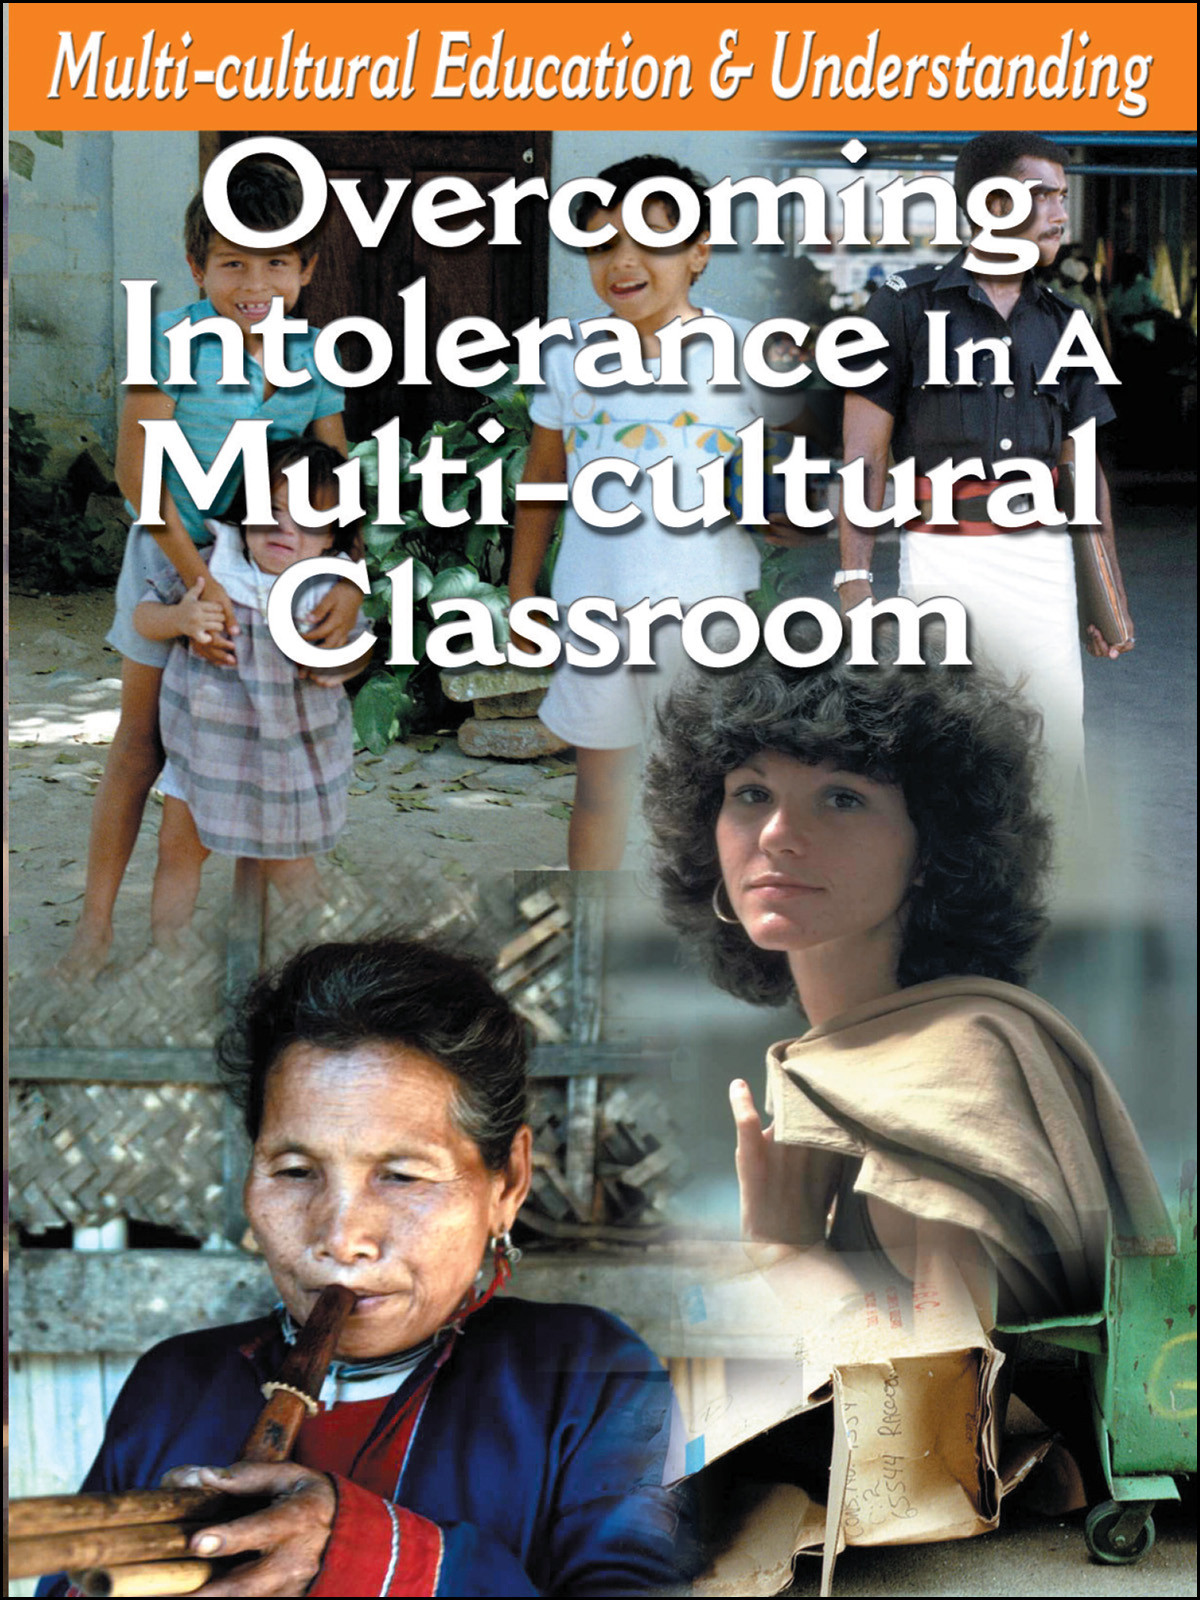 L924 - Overcoming Intolerance In A Multi-cultural Classroom